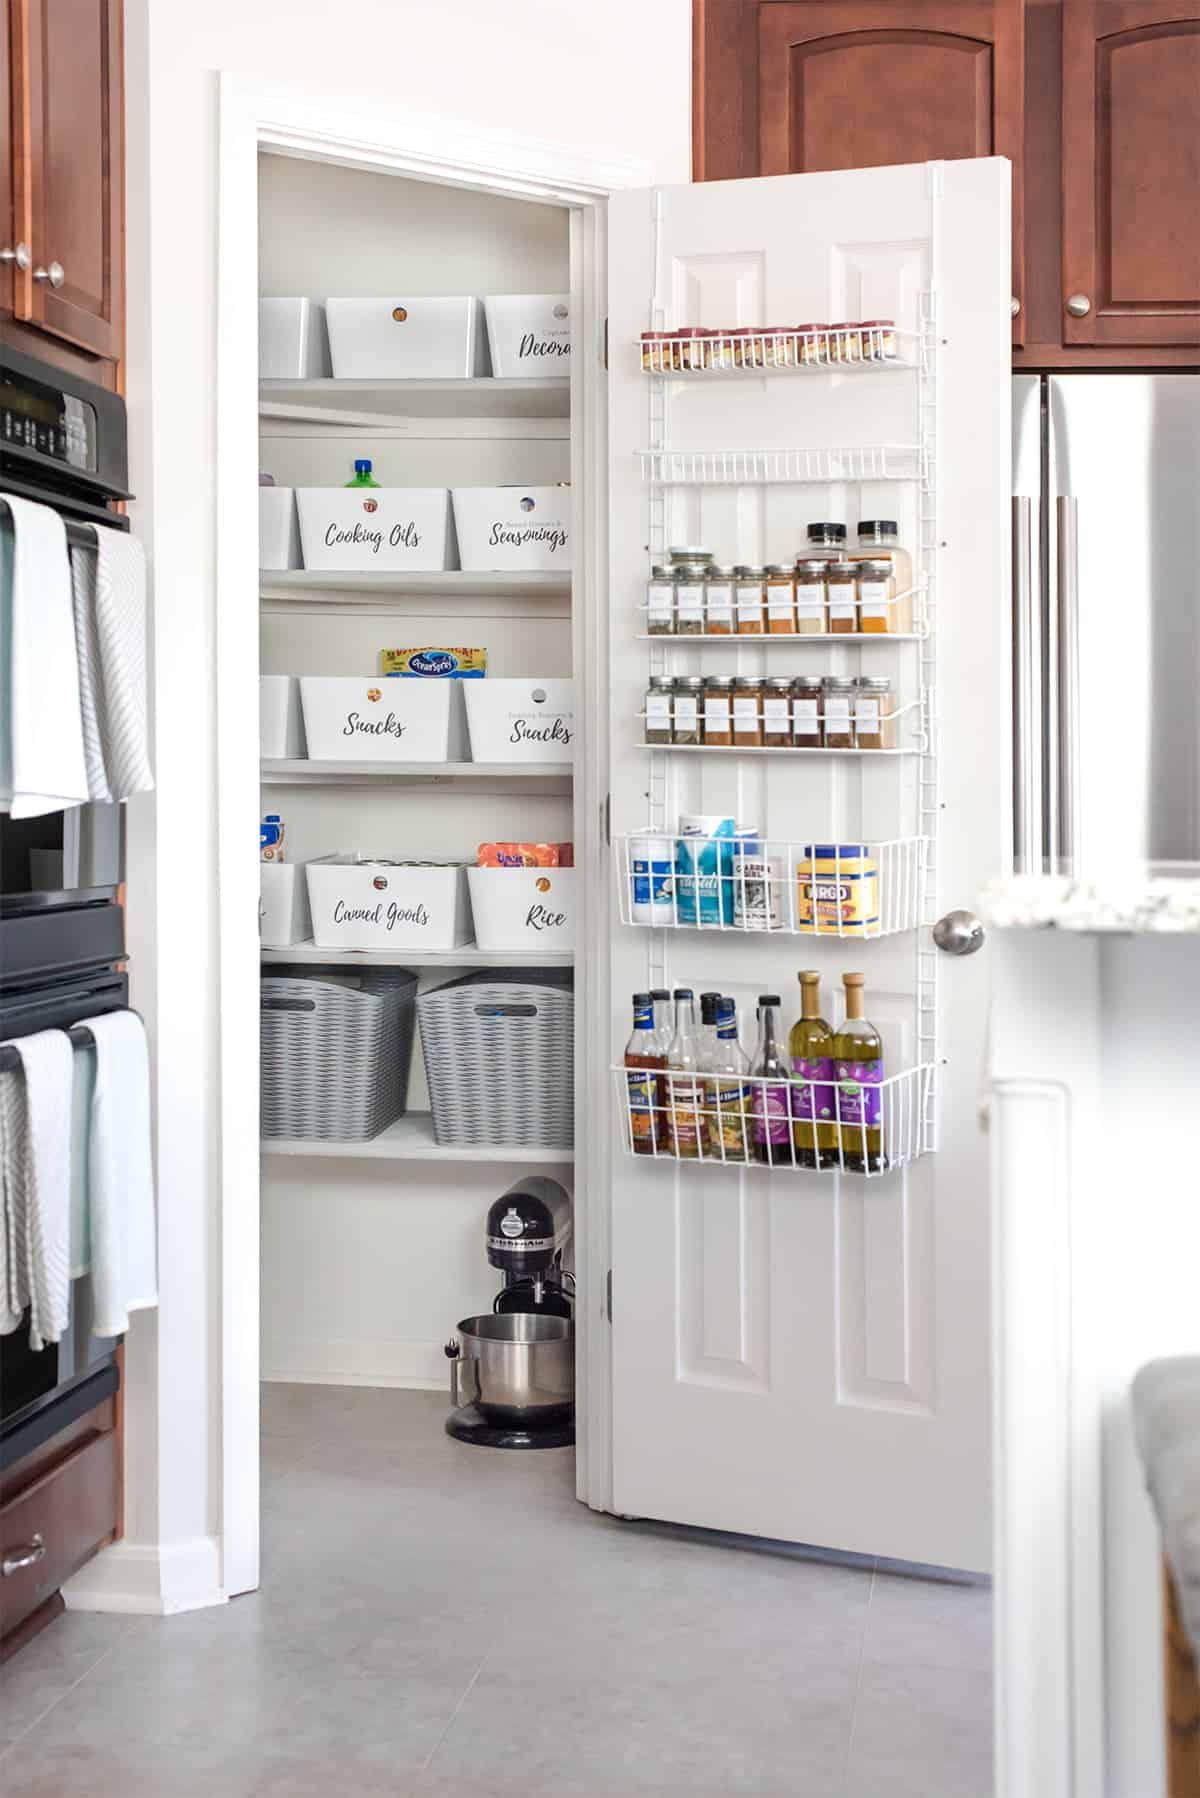 Organized pantry with hanging wire over-the-door spice rack organizer and labeled pantry bins organization.